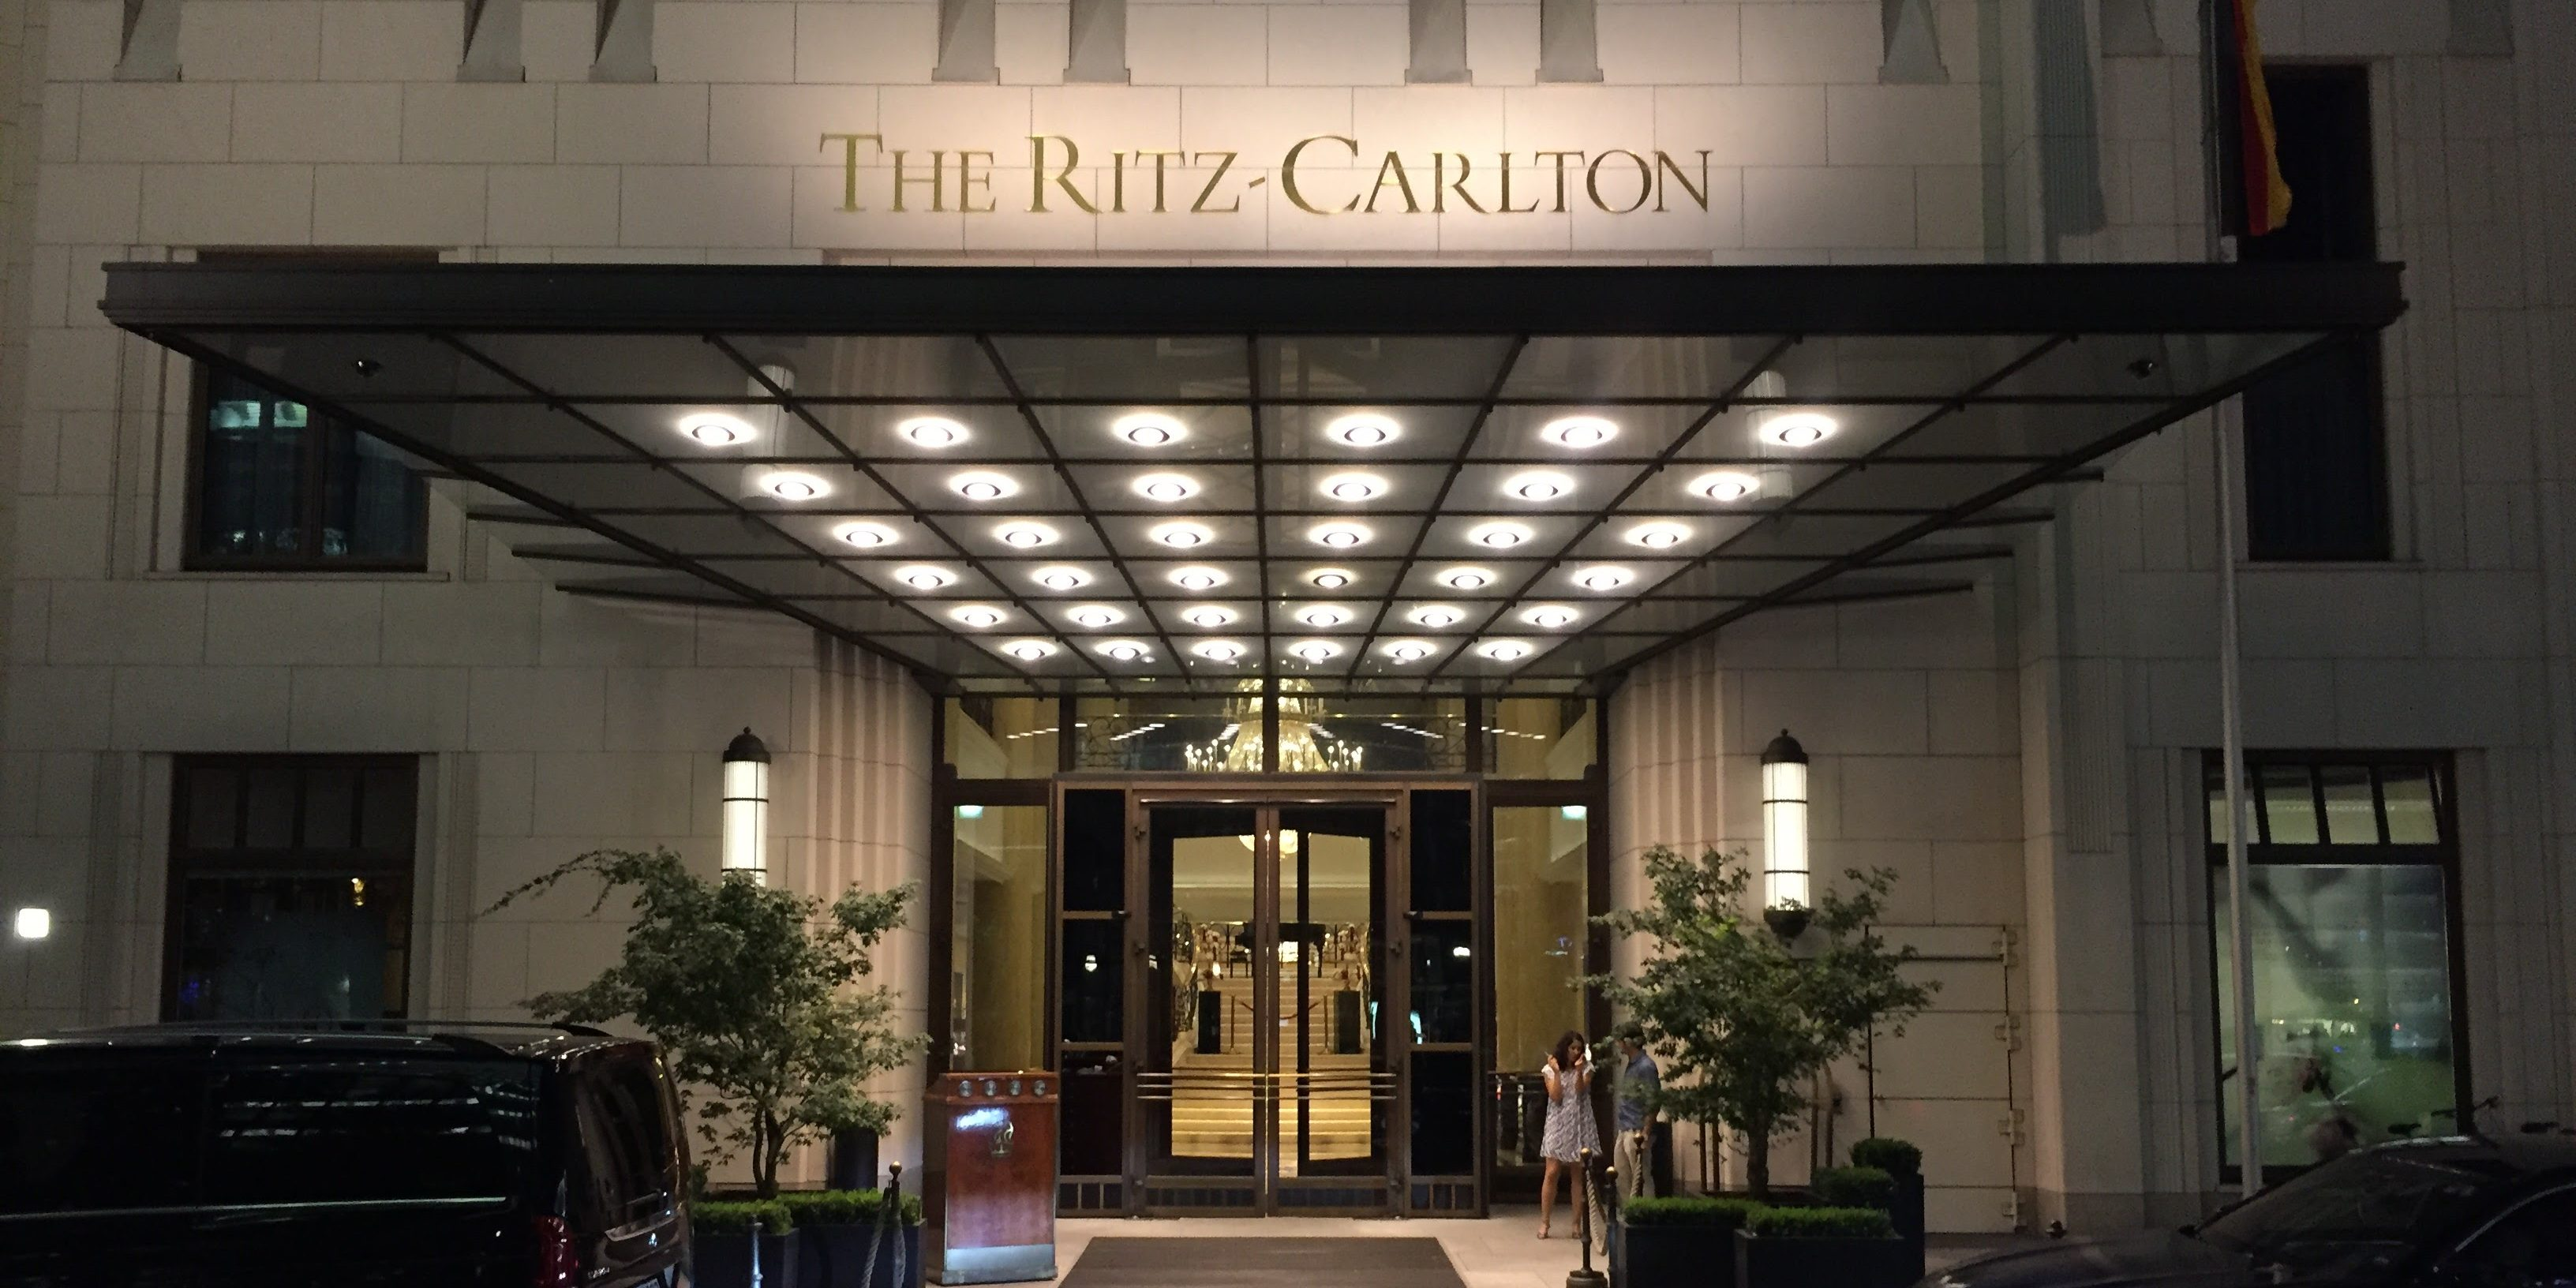 Review: The Ritz-Carlton Berlin